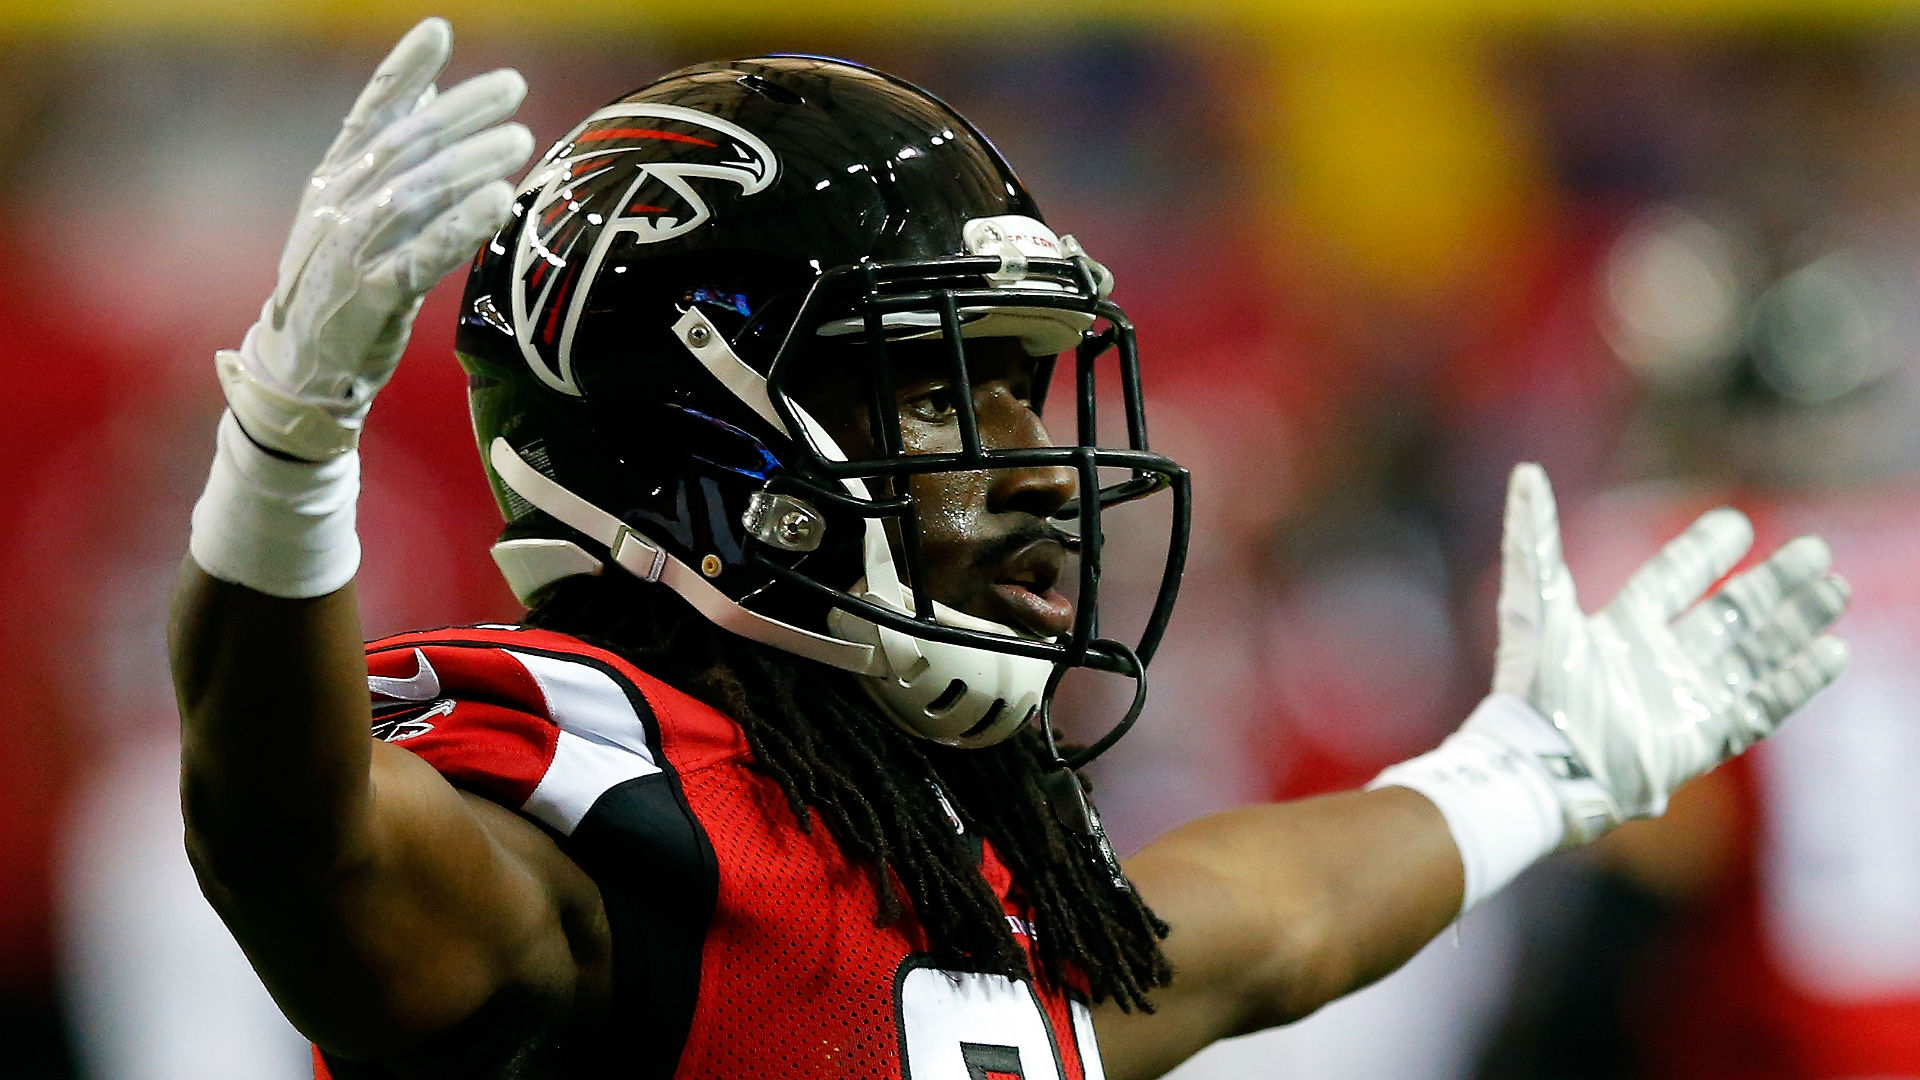 Atlanta Falcons place CB Desmond Trufant on injured reserve